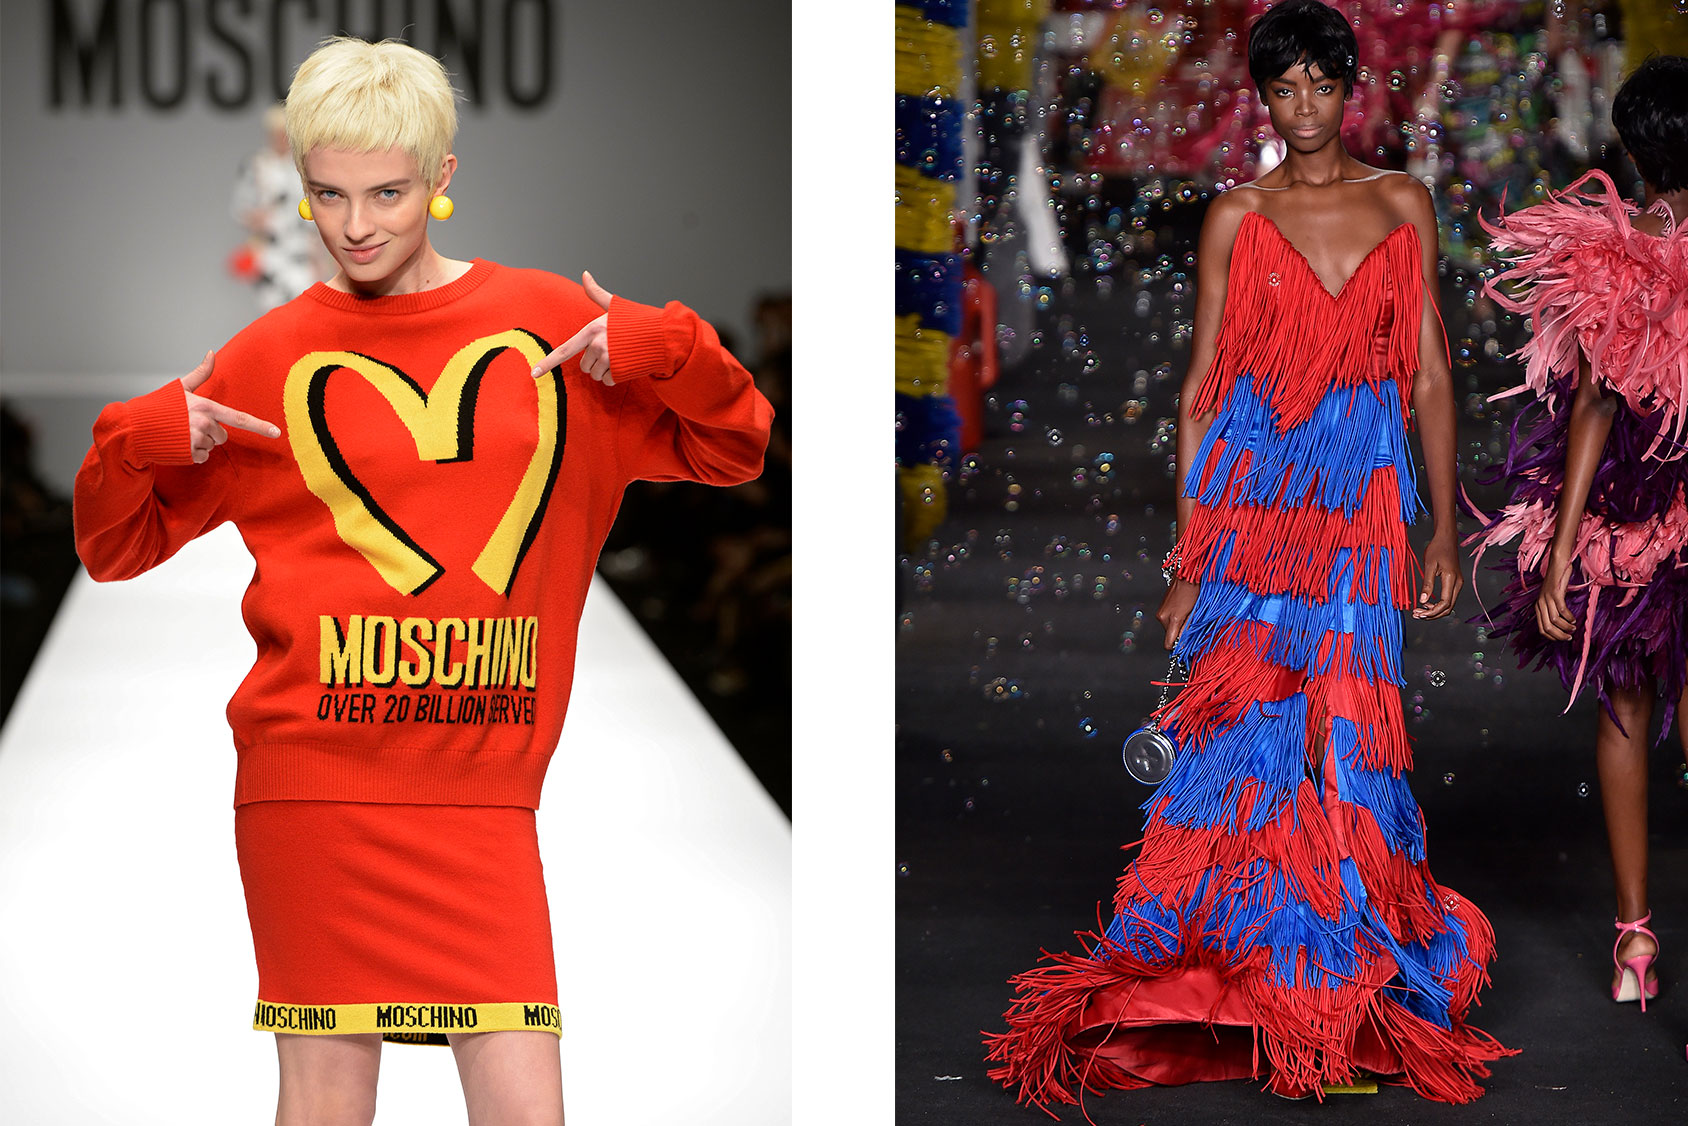 H&m Online Polska Moschino And H M In Designer Collaboration H M Pl